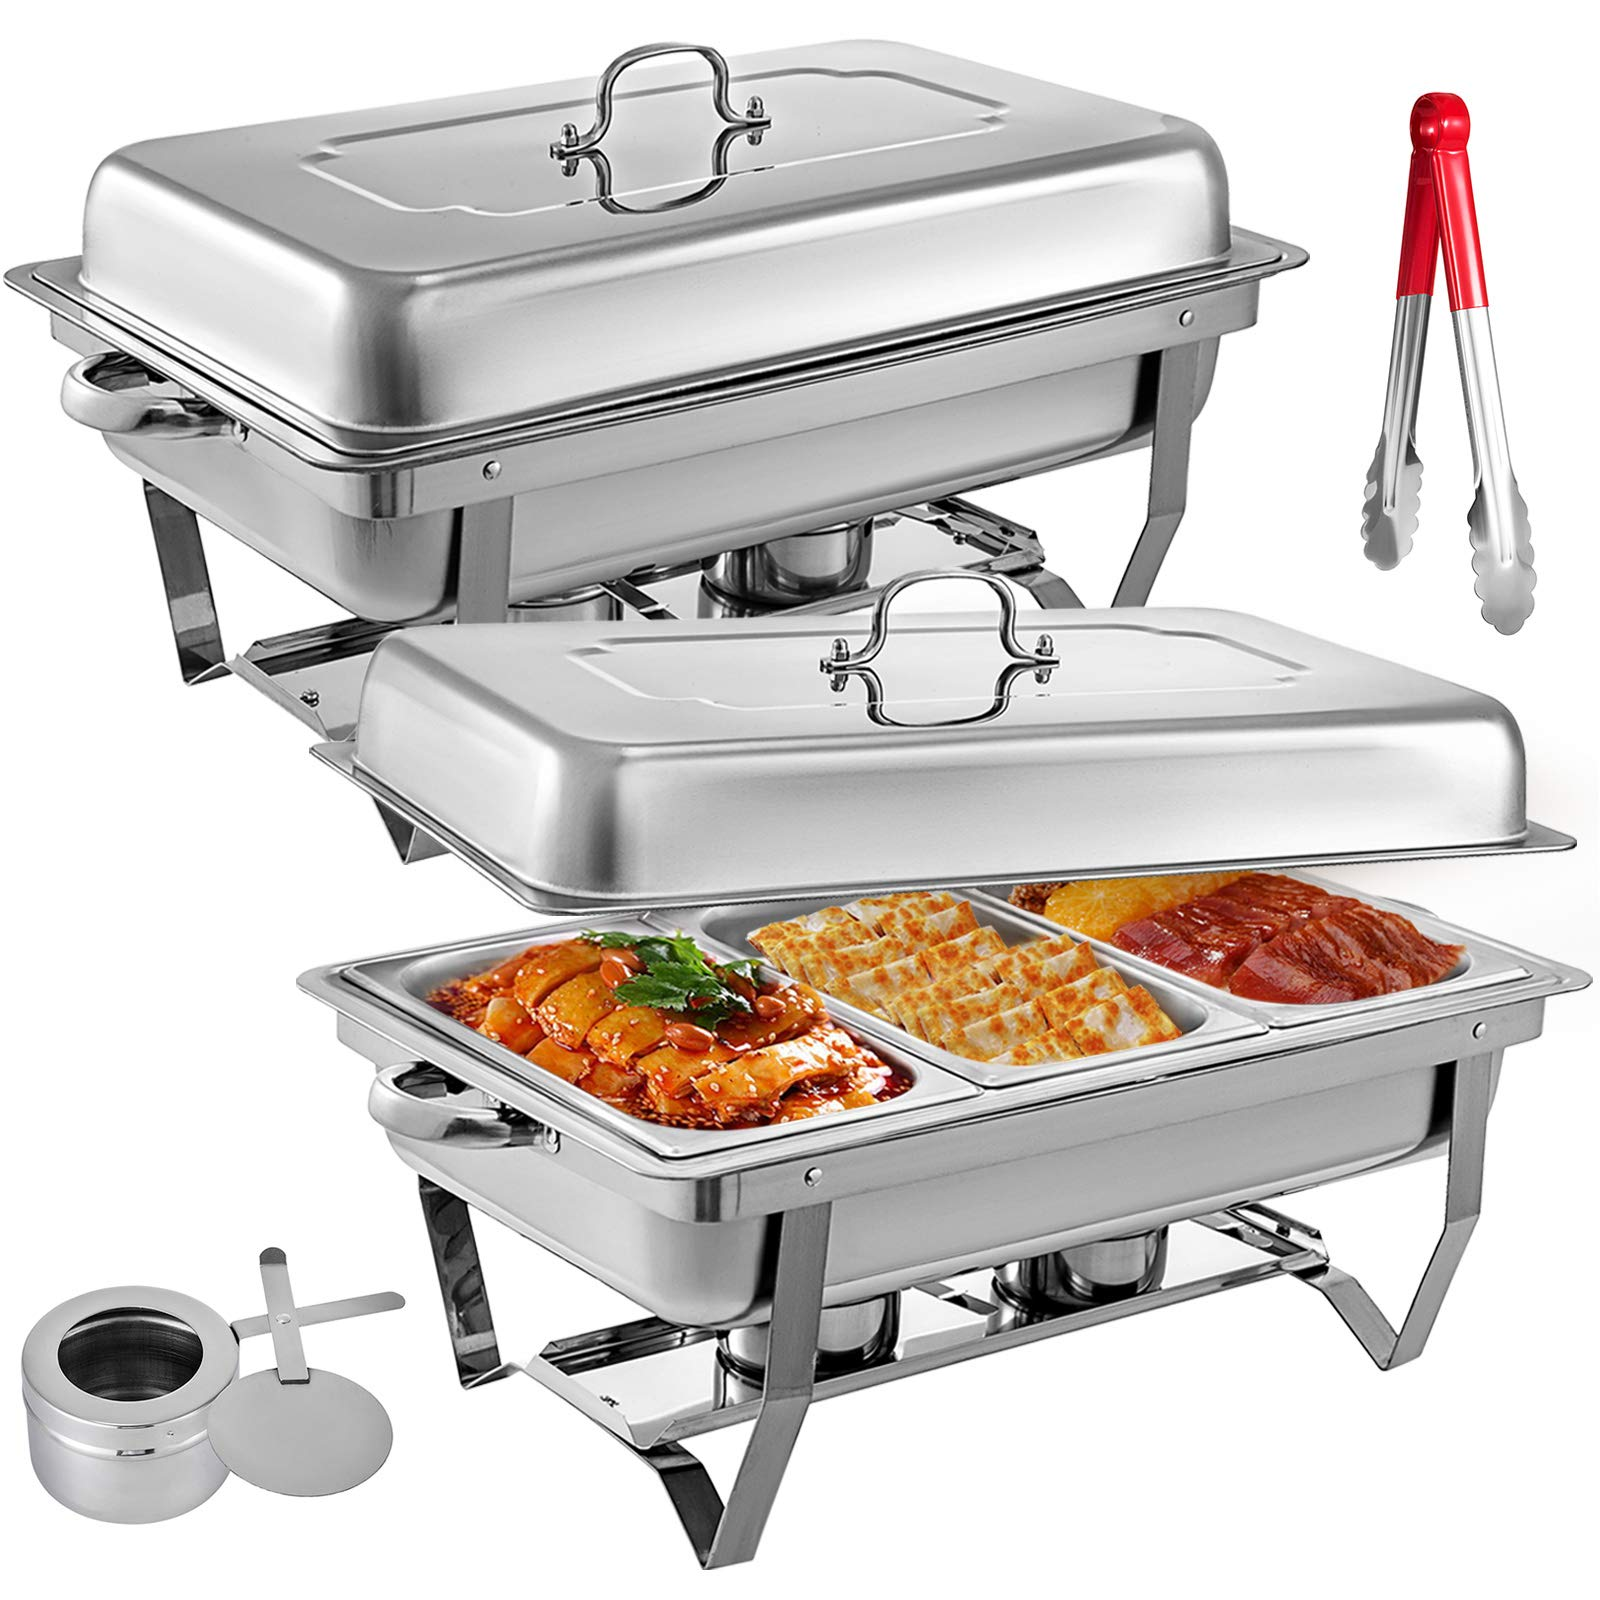 Mophorn 2 Packs Stainless Steel Chafing Dishes 3 1 in 3rd Size Pans 8 Quart Rectangular Chafer Complete Set Chafing Dishes Food Pans